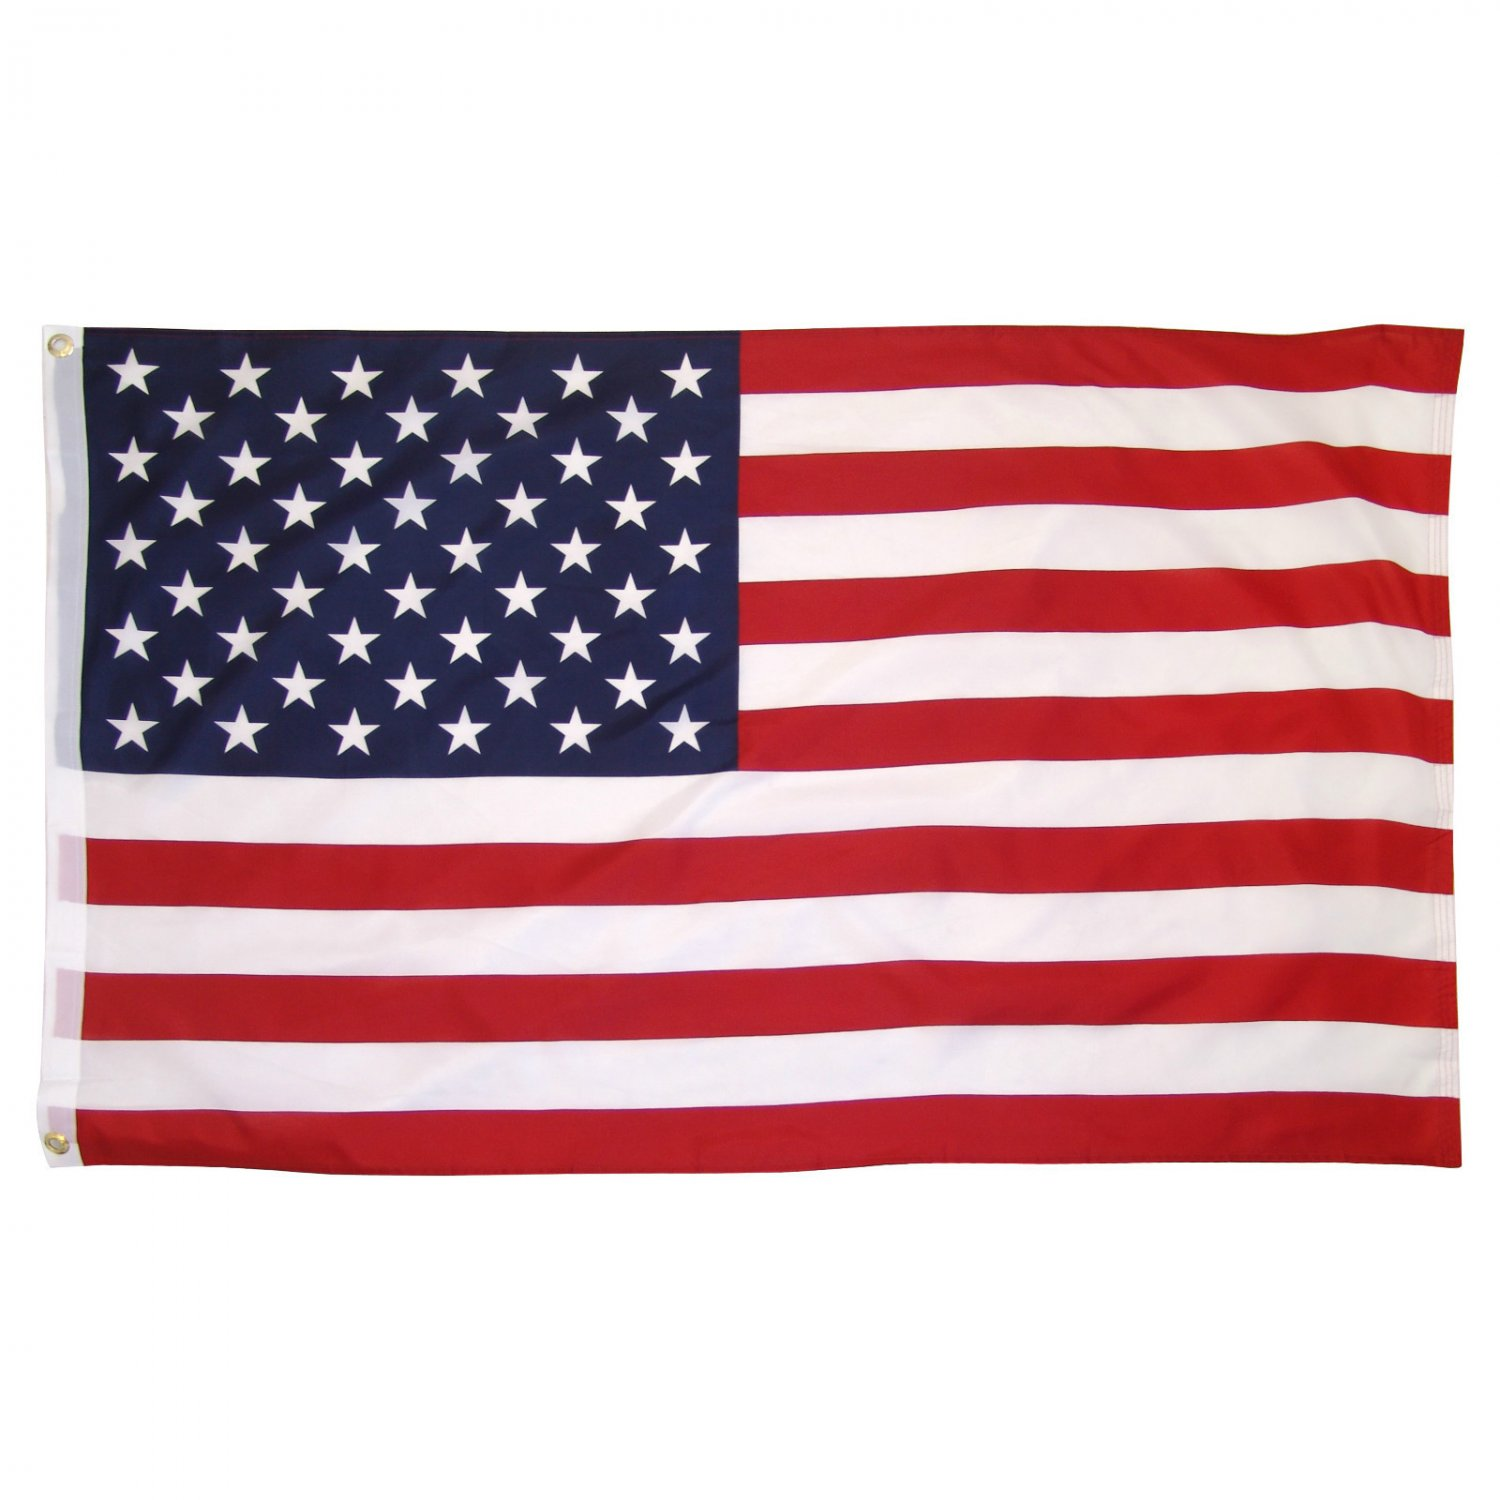 3 LOT new United States Flag 3 x 5 foot American Flag USA American flag Polyester